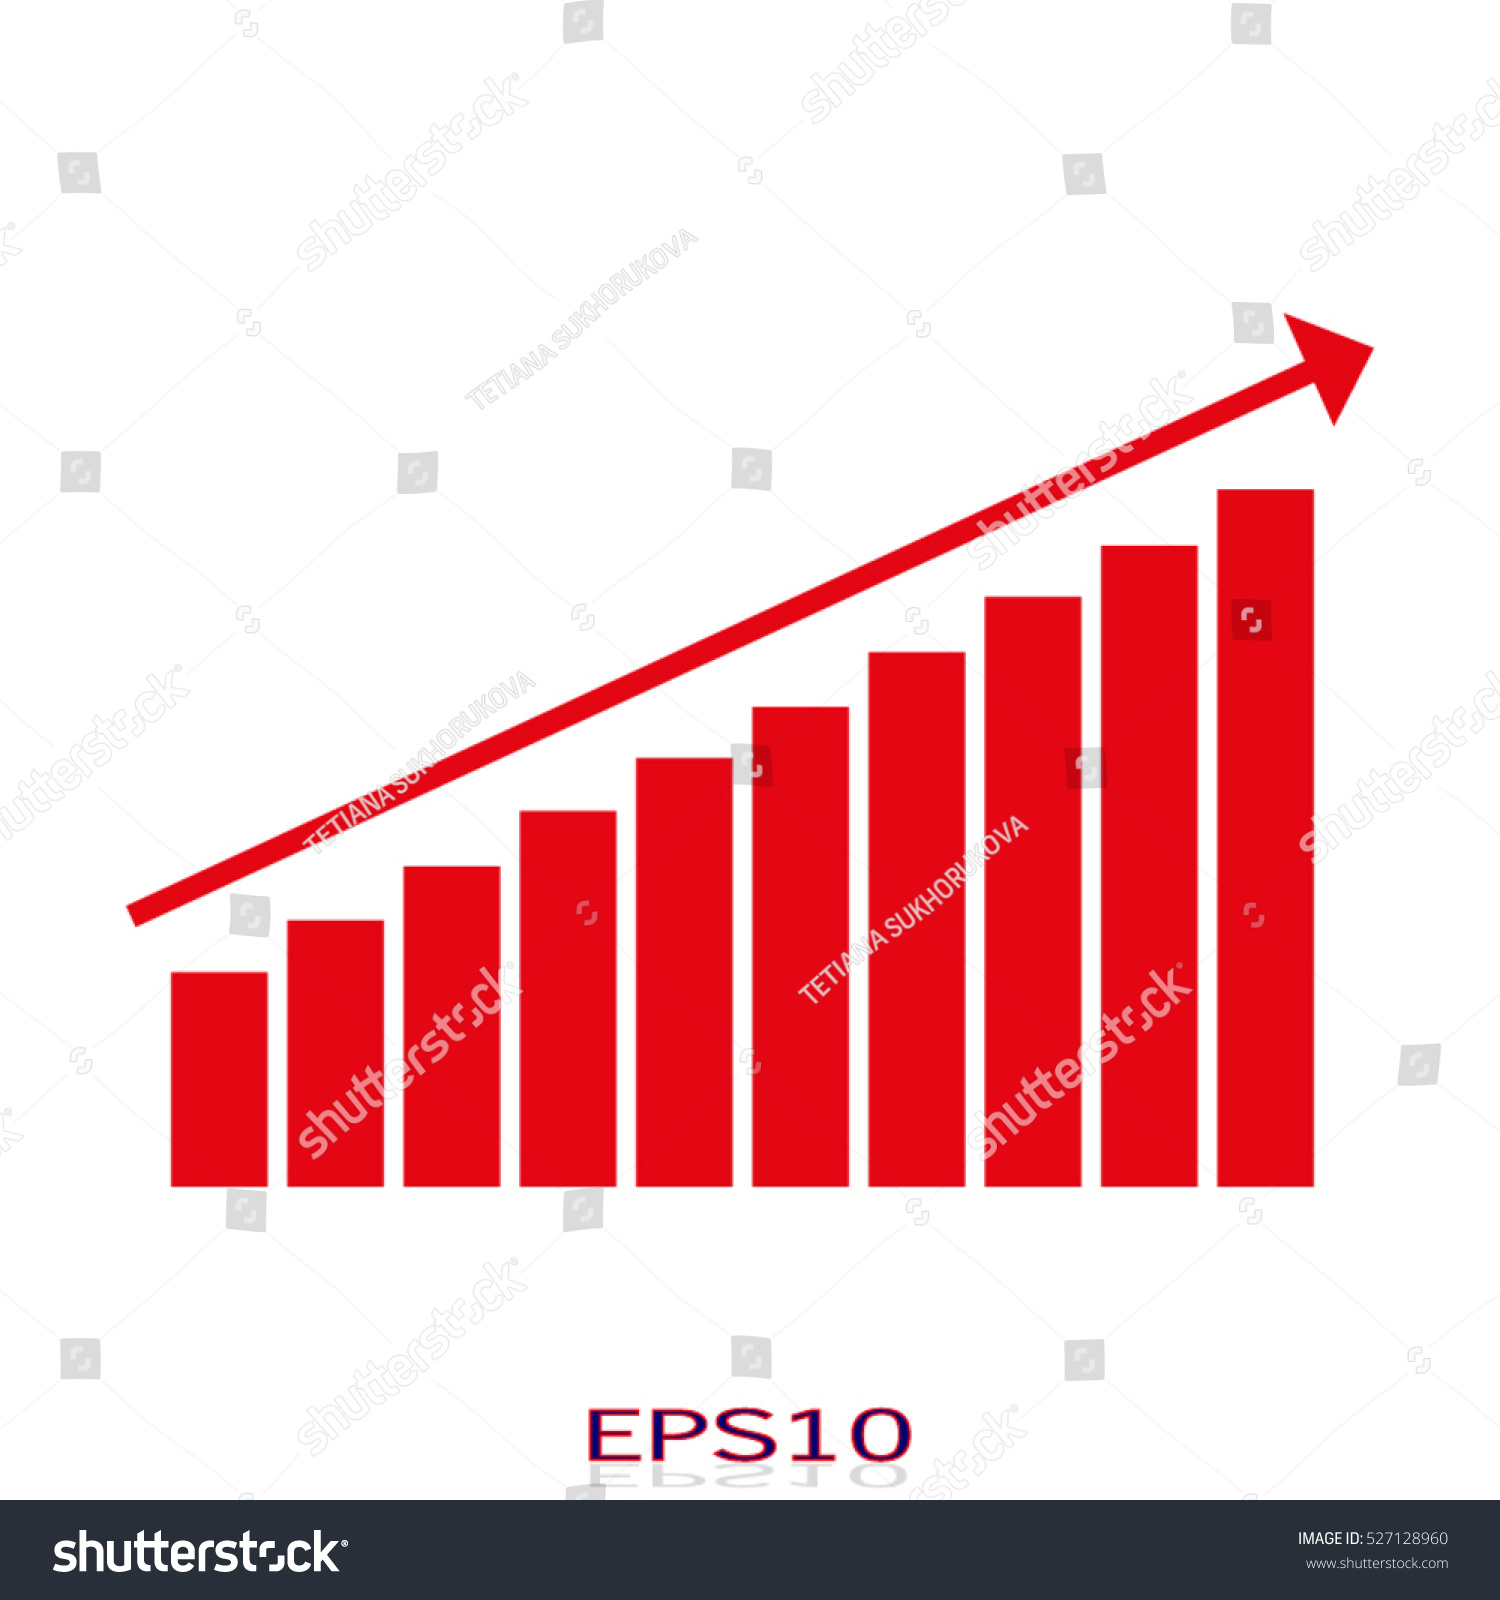 Business growth chart vector icon eps10 stock vector 527128960 business growth chart vector icon eps10 nvjuhfo Gallery